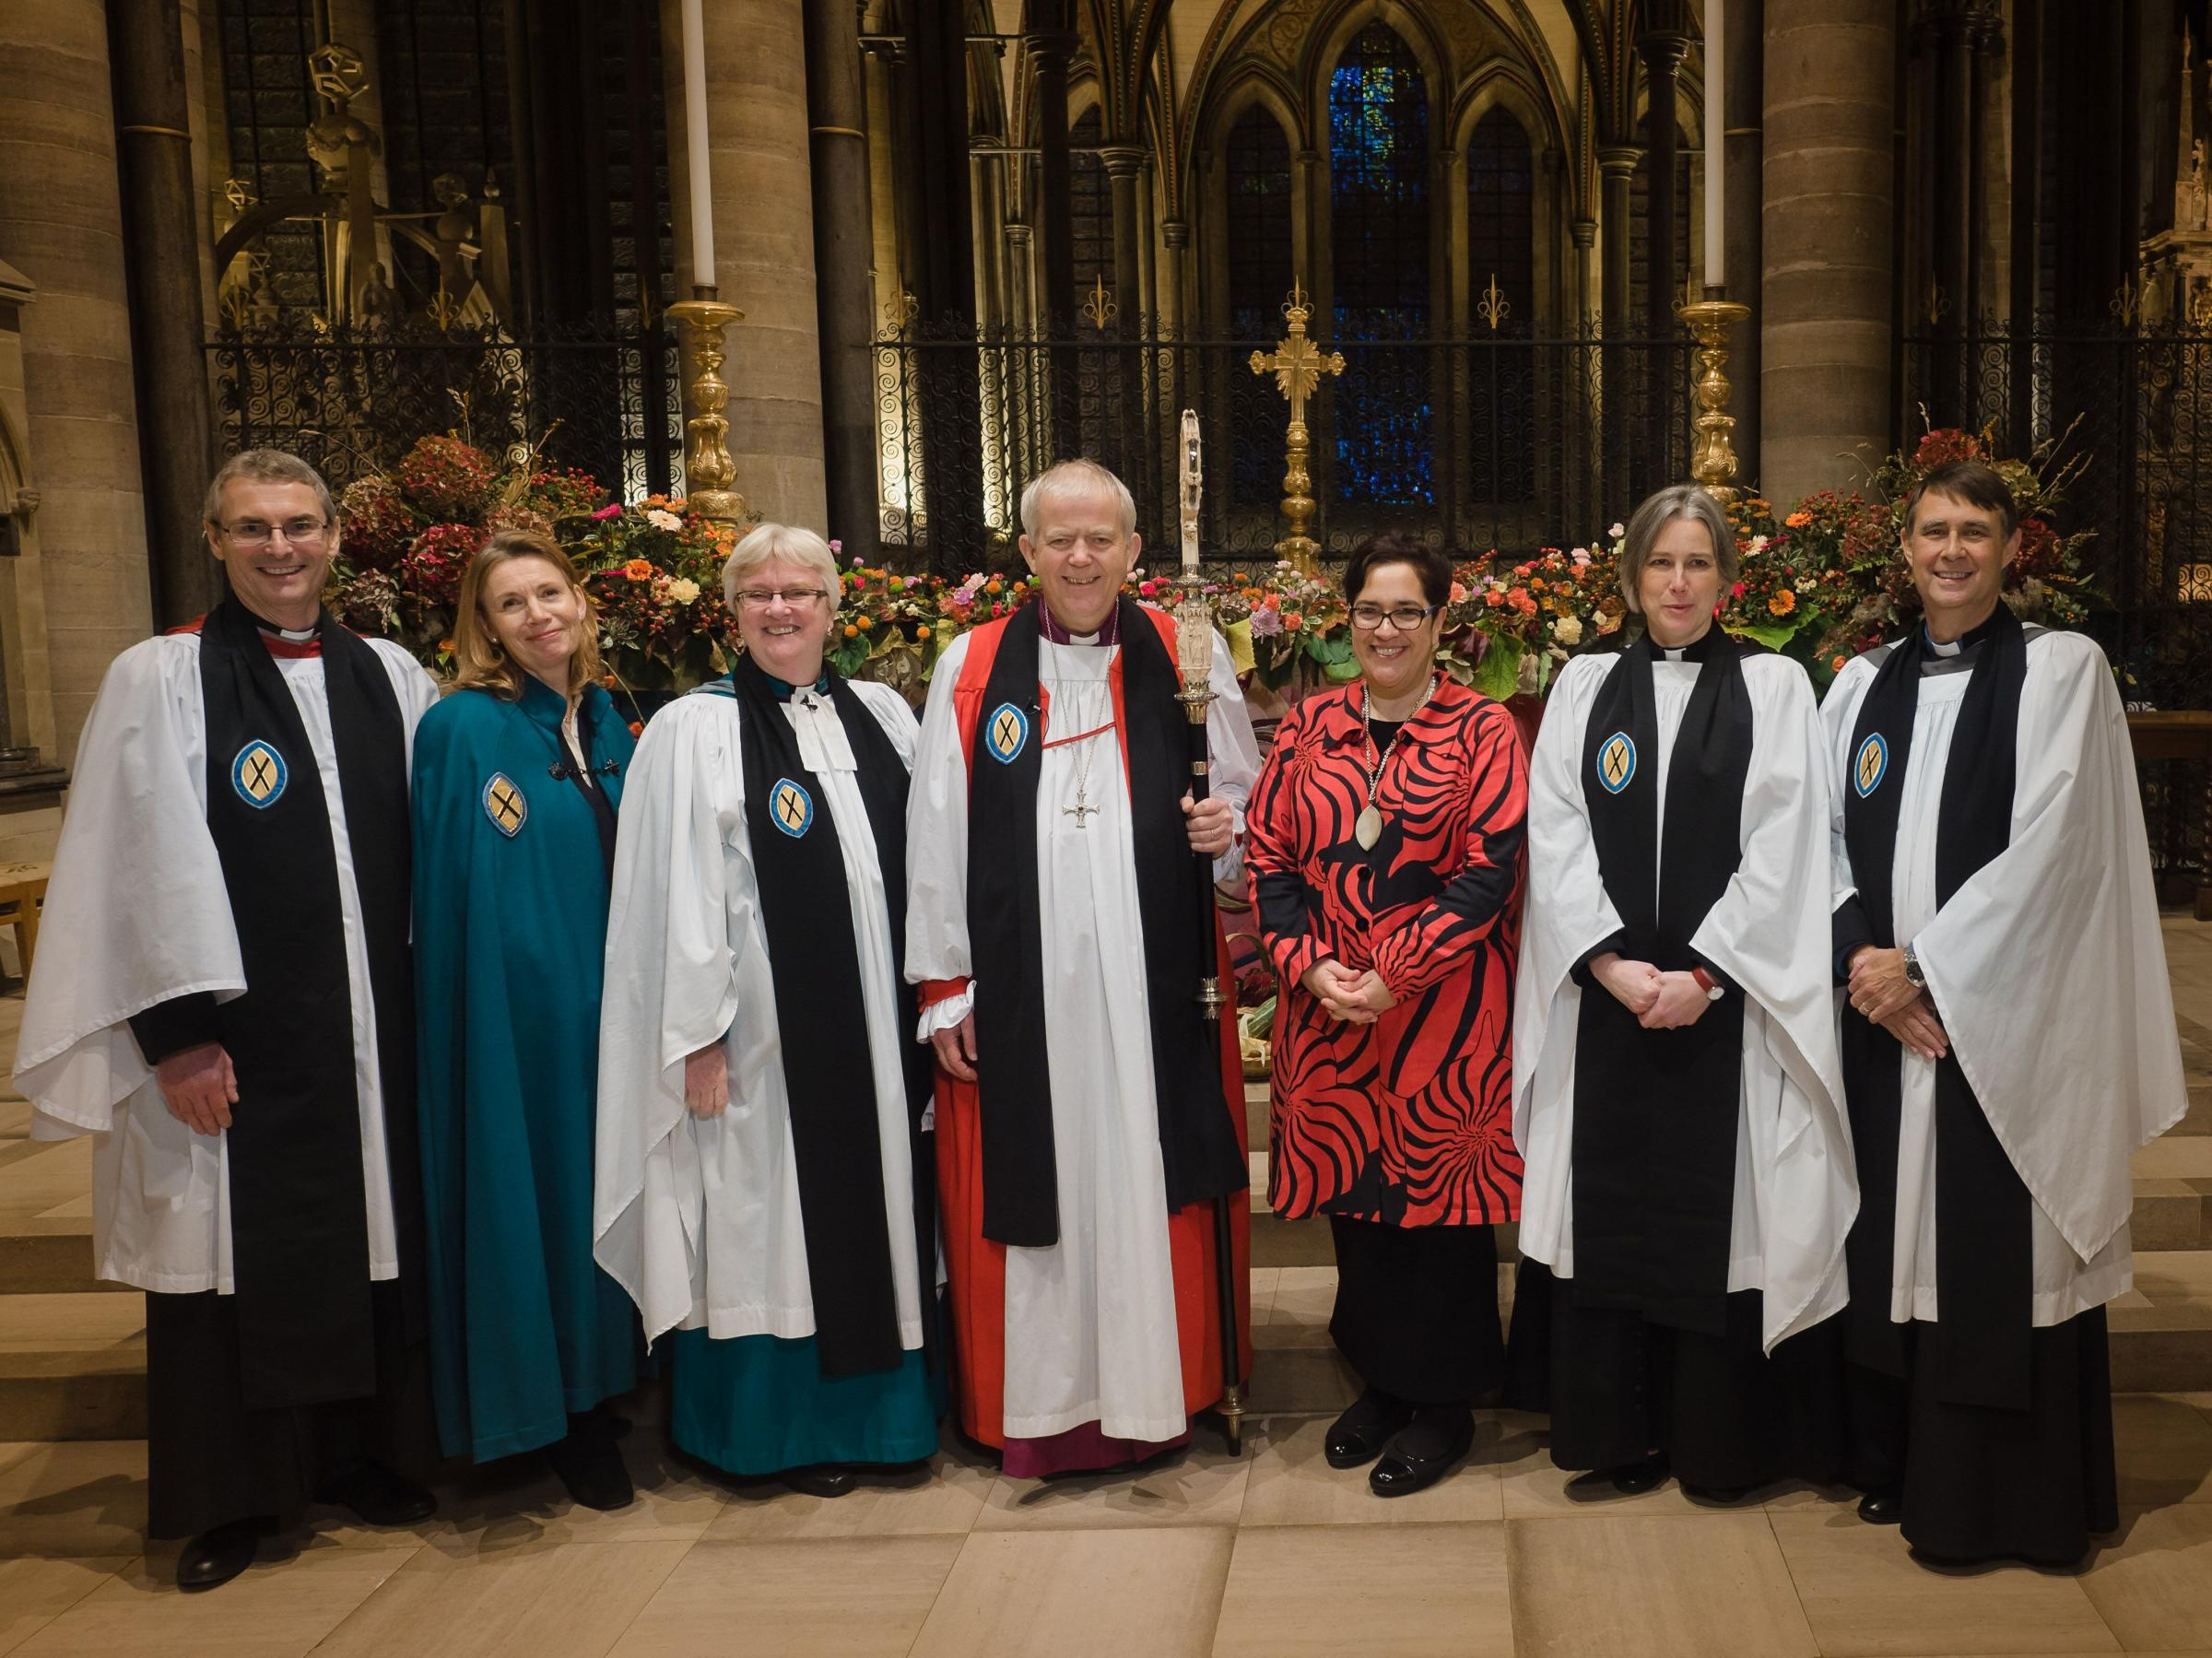 Loretta Minghella appointed in an Evensong ceremony Picture: Salisbury Cathedral